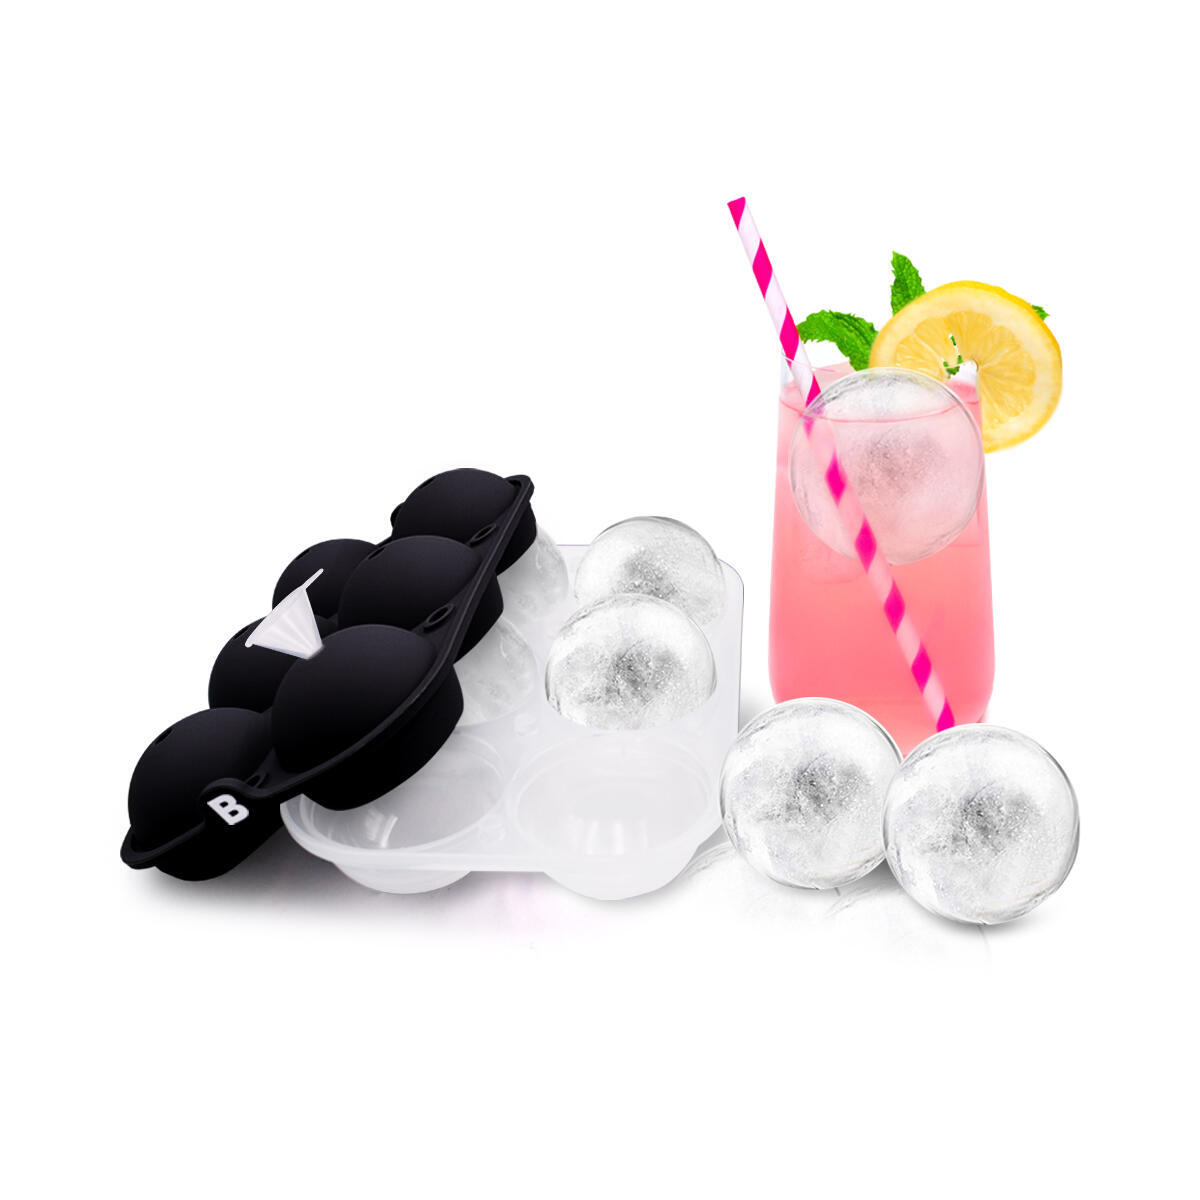 Ice Tray - Round Ice - 6 Balls - FREE Funnel Included